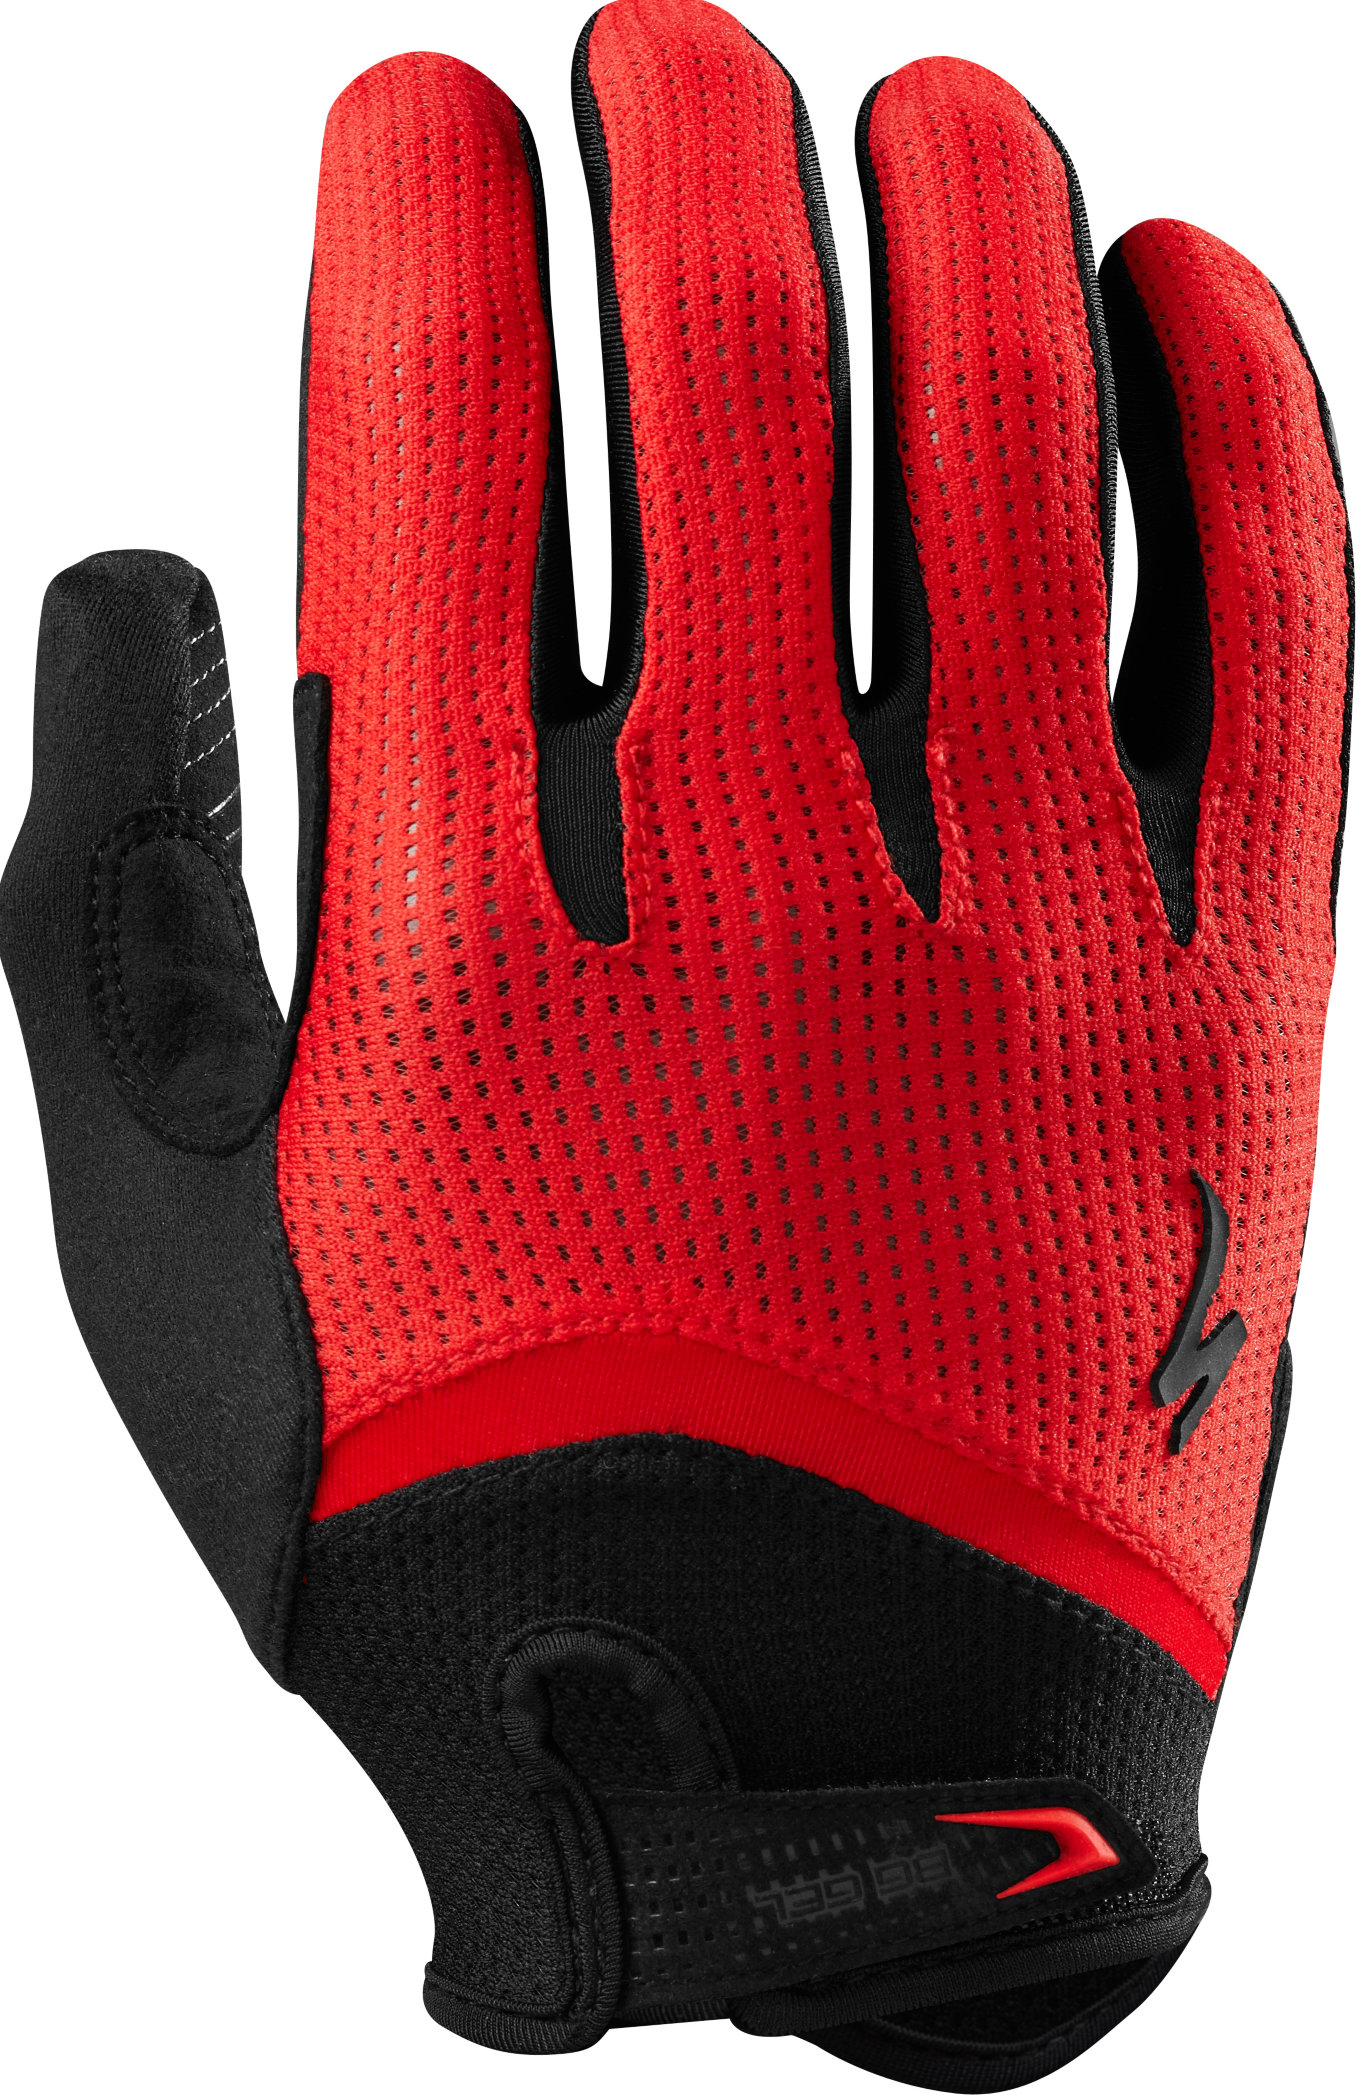 SPECIALIZED BG GEL GLOVE LF RED XXL - Bikedreams & Dustbikes